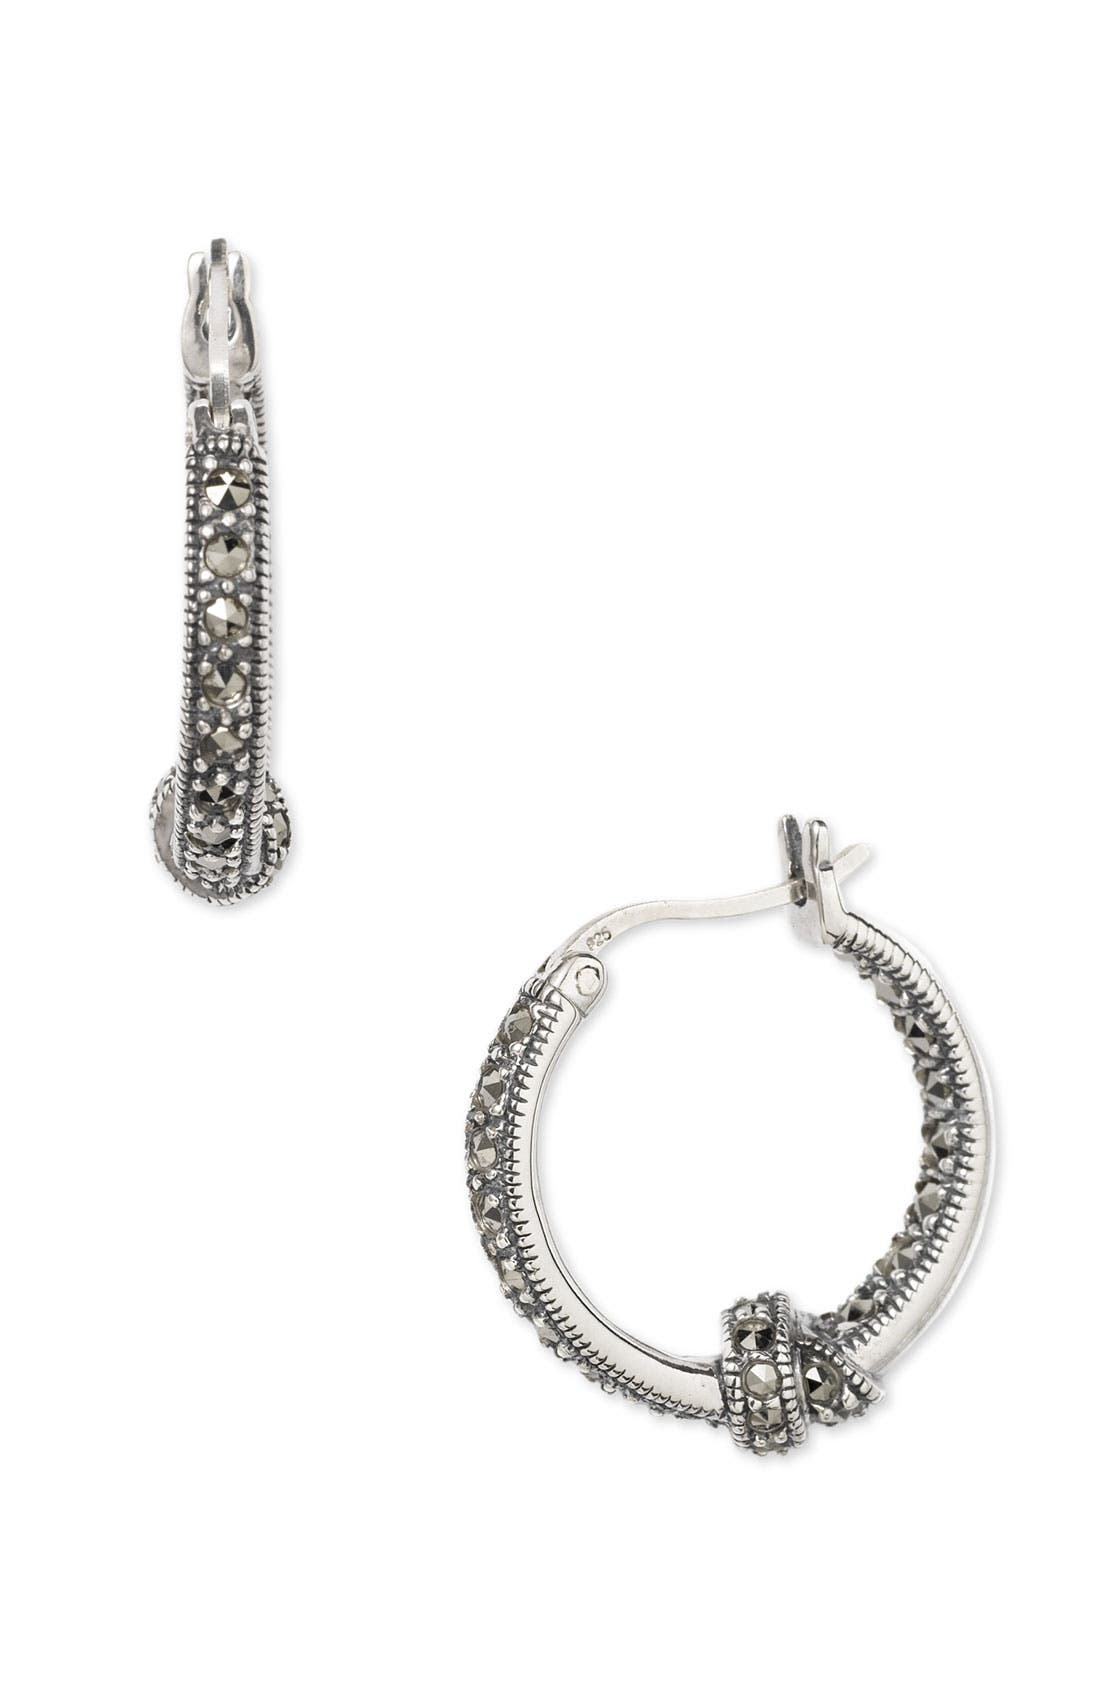 Alternate Image 1 Selected - Judith Jack Marcasite Hoop Earrings with Knot Detail